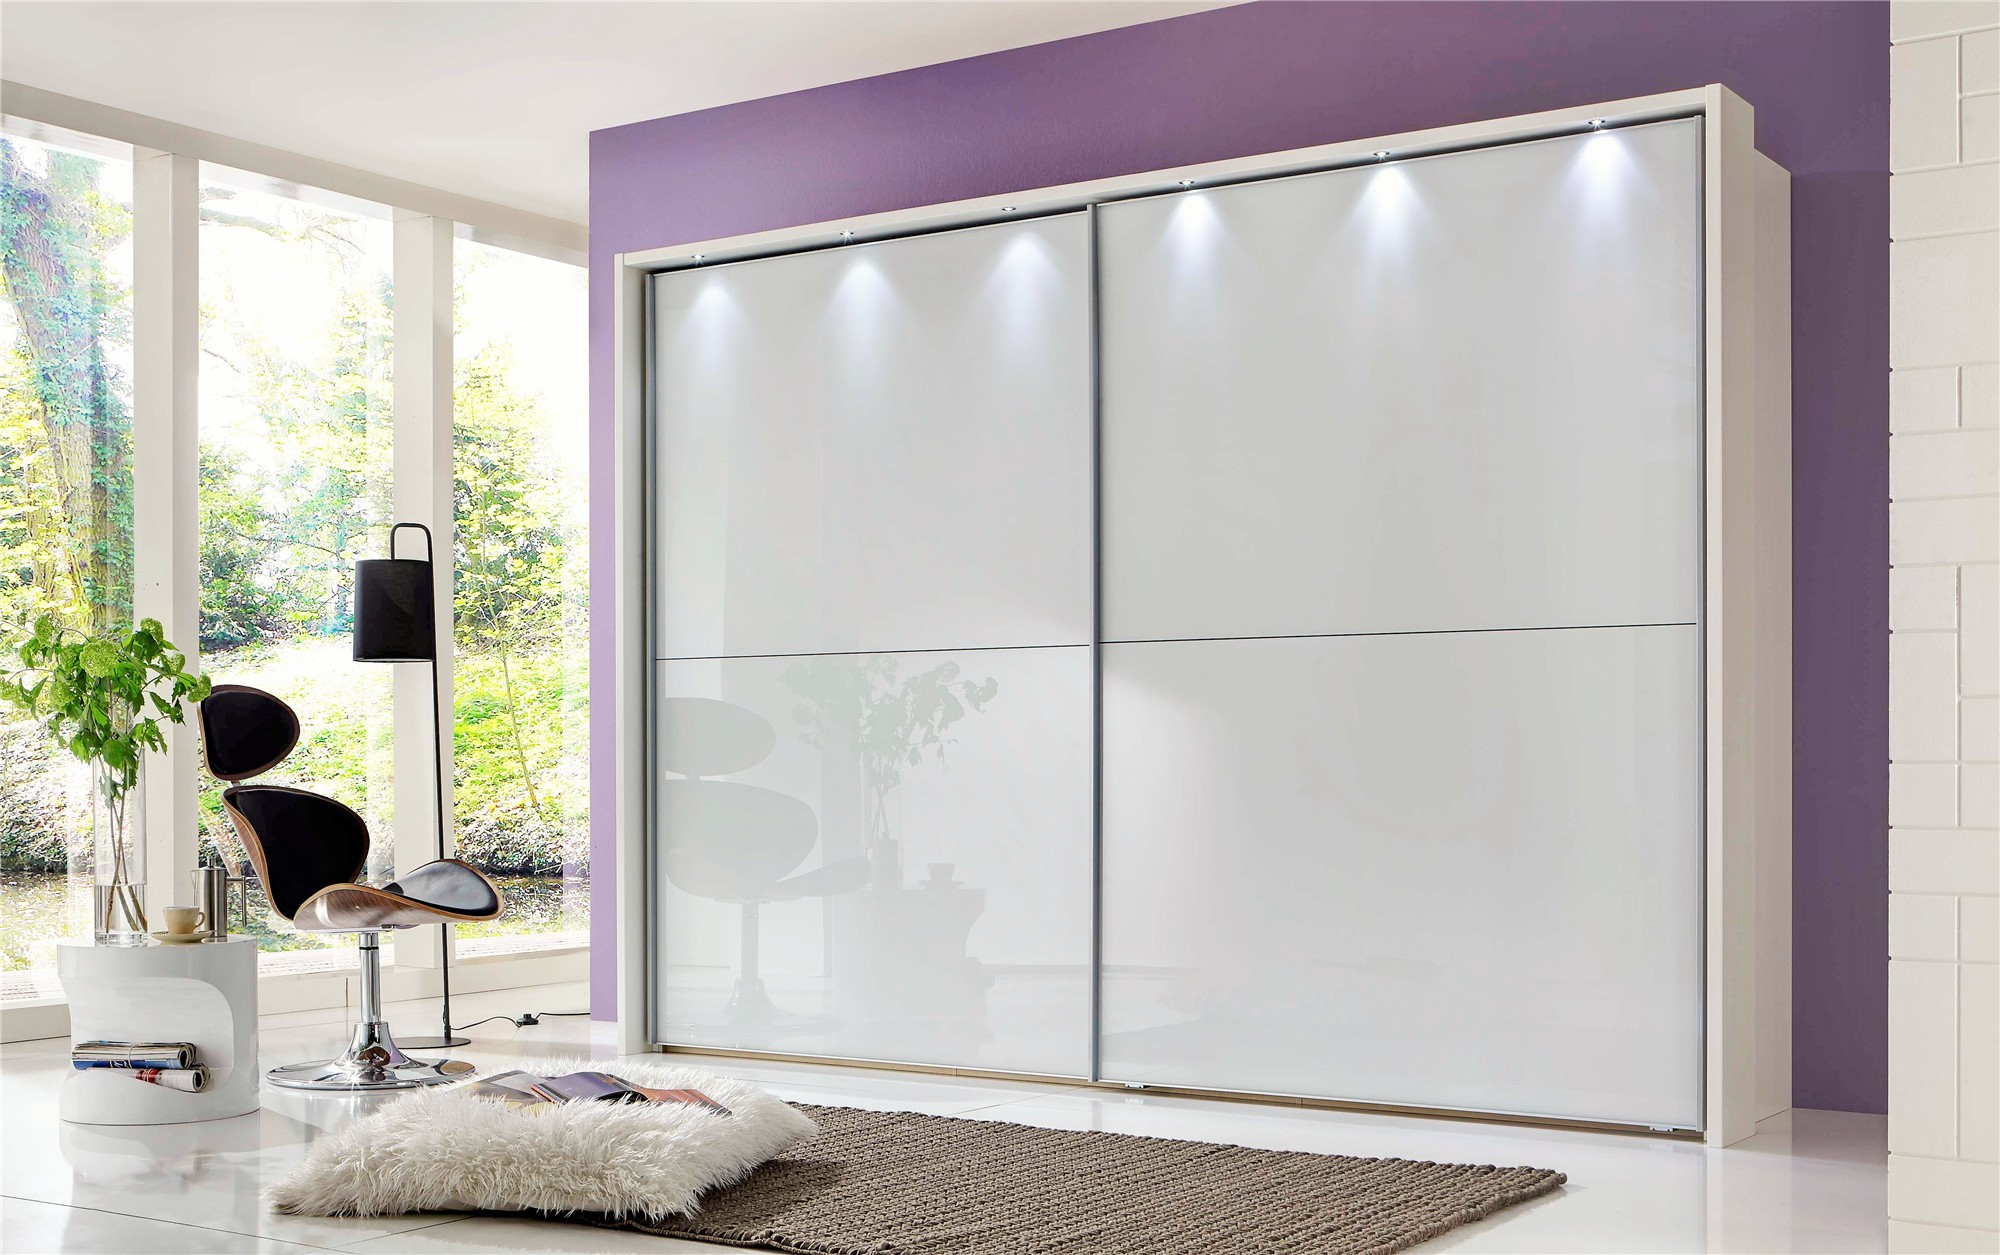 Bedroom Mirrored Furniture Linus By Stylform Glass Sliding Door Wardrobe Head2bed Uk